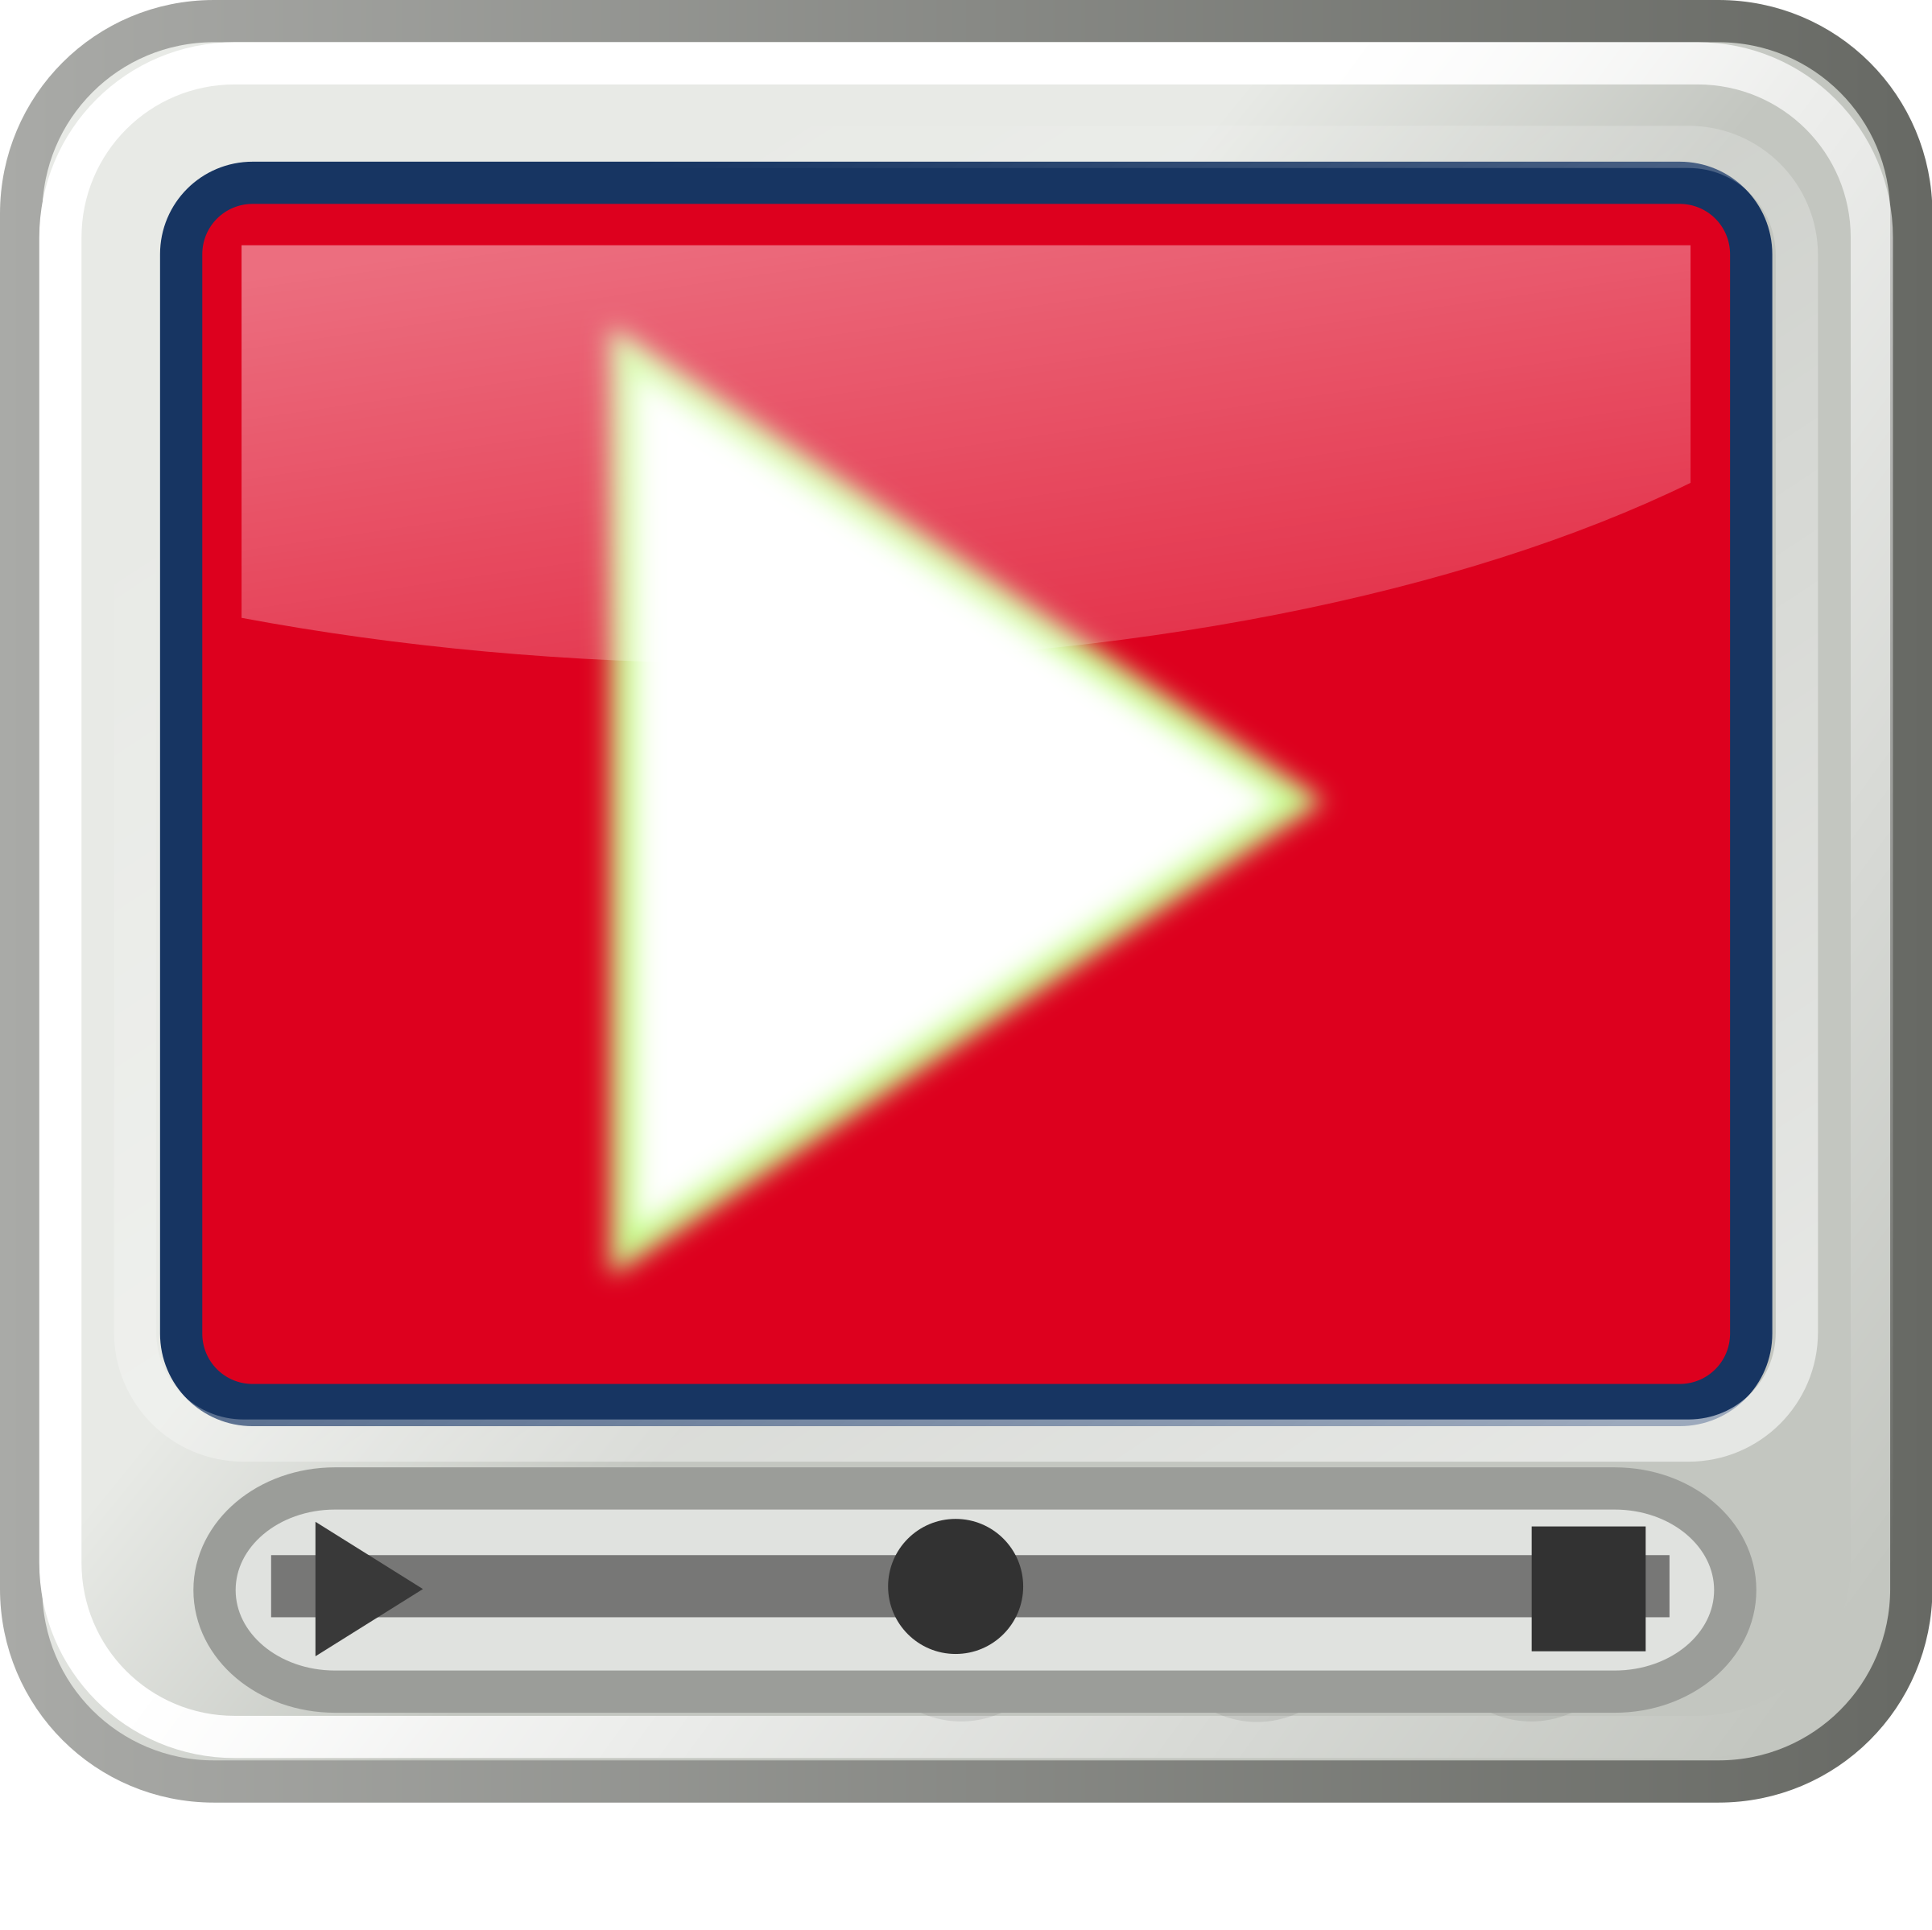 Video Player Symbol YouTubeStyle by B.Lachner